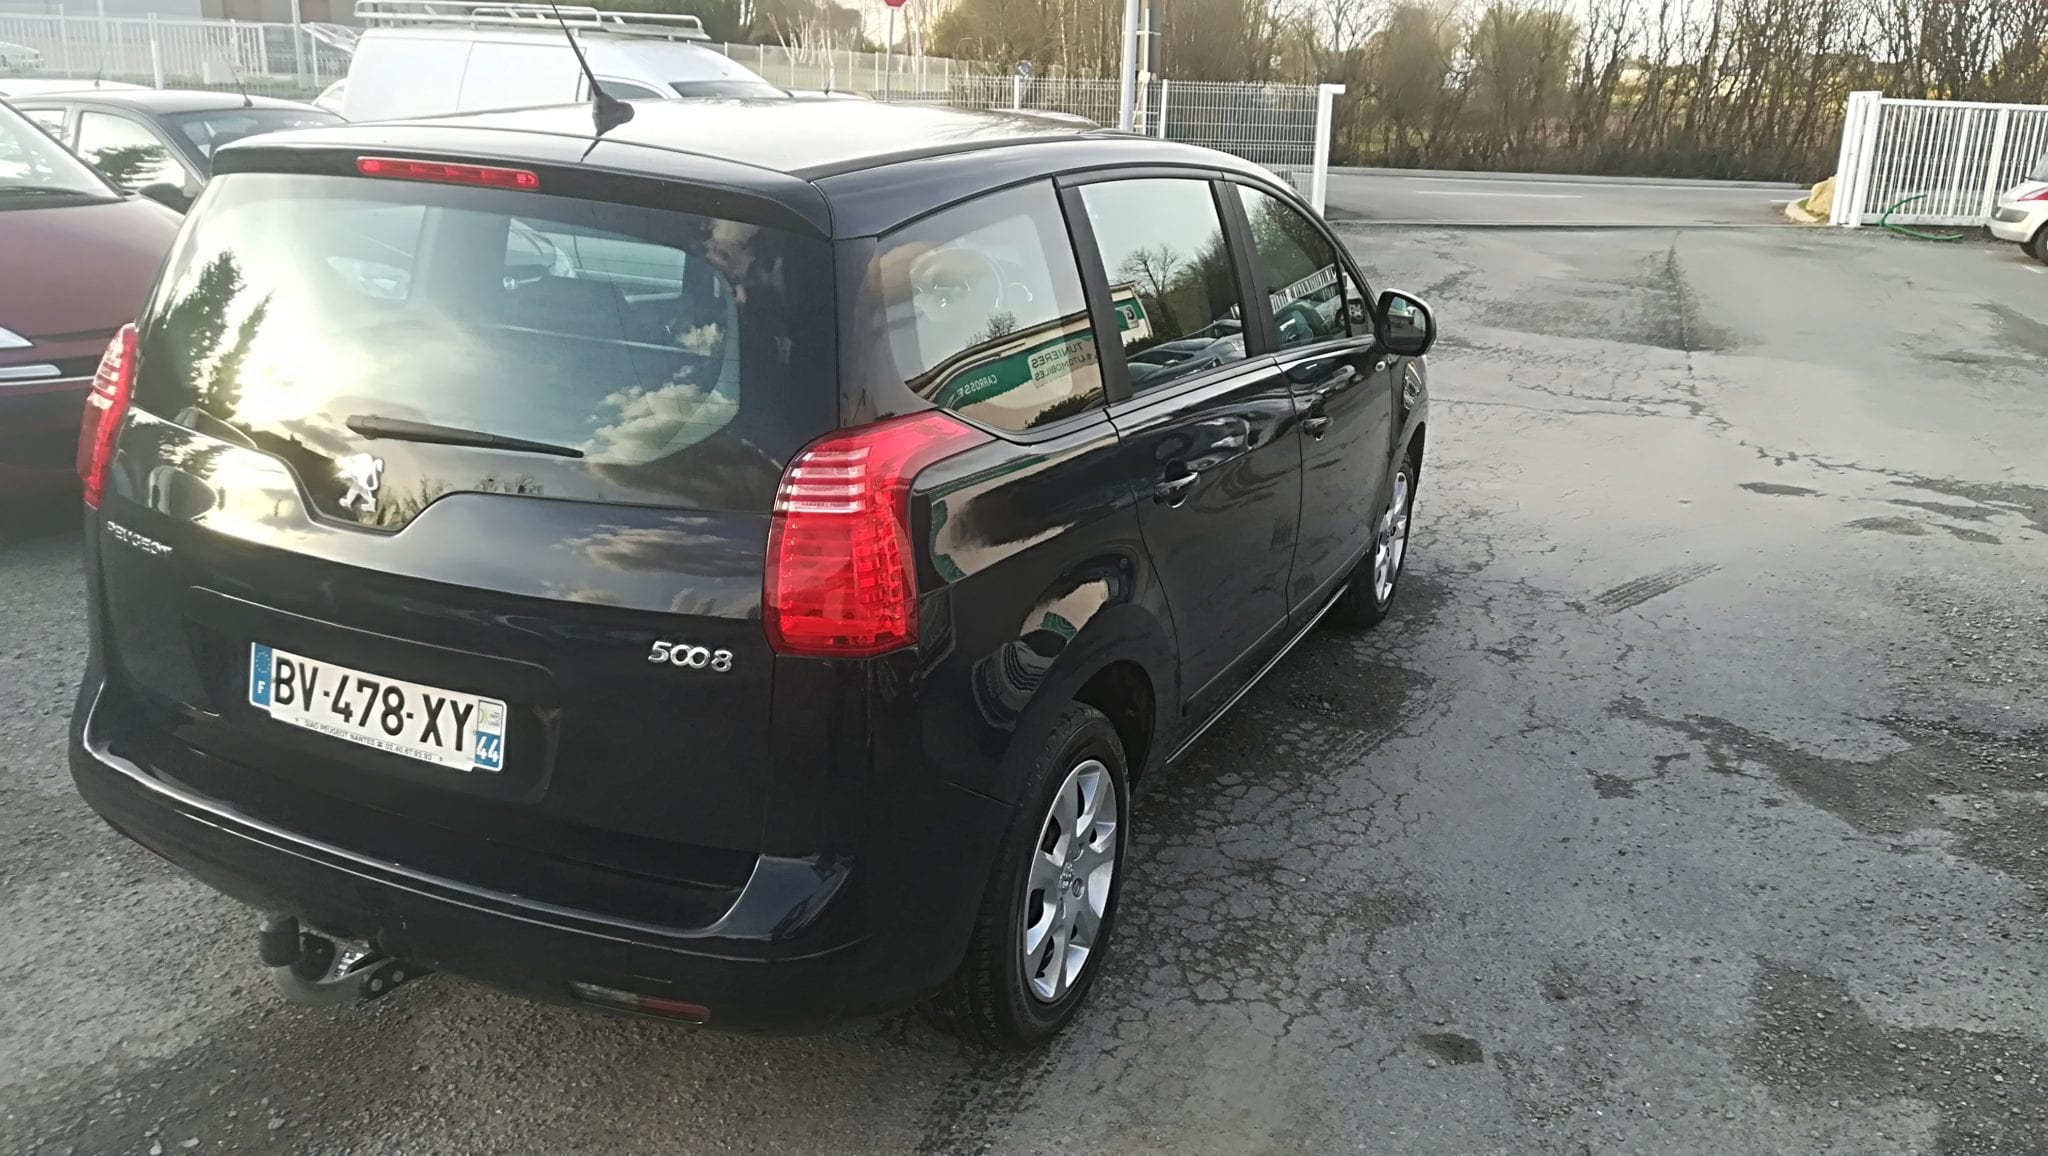 Peugeot 5008 1.6 L HDI 112 CV BVM FINITION ACCESS 5 PLACES - Image 2